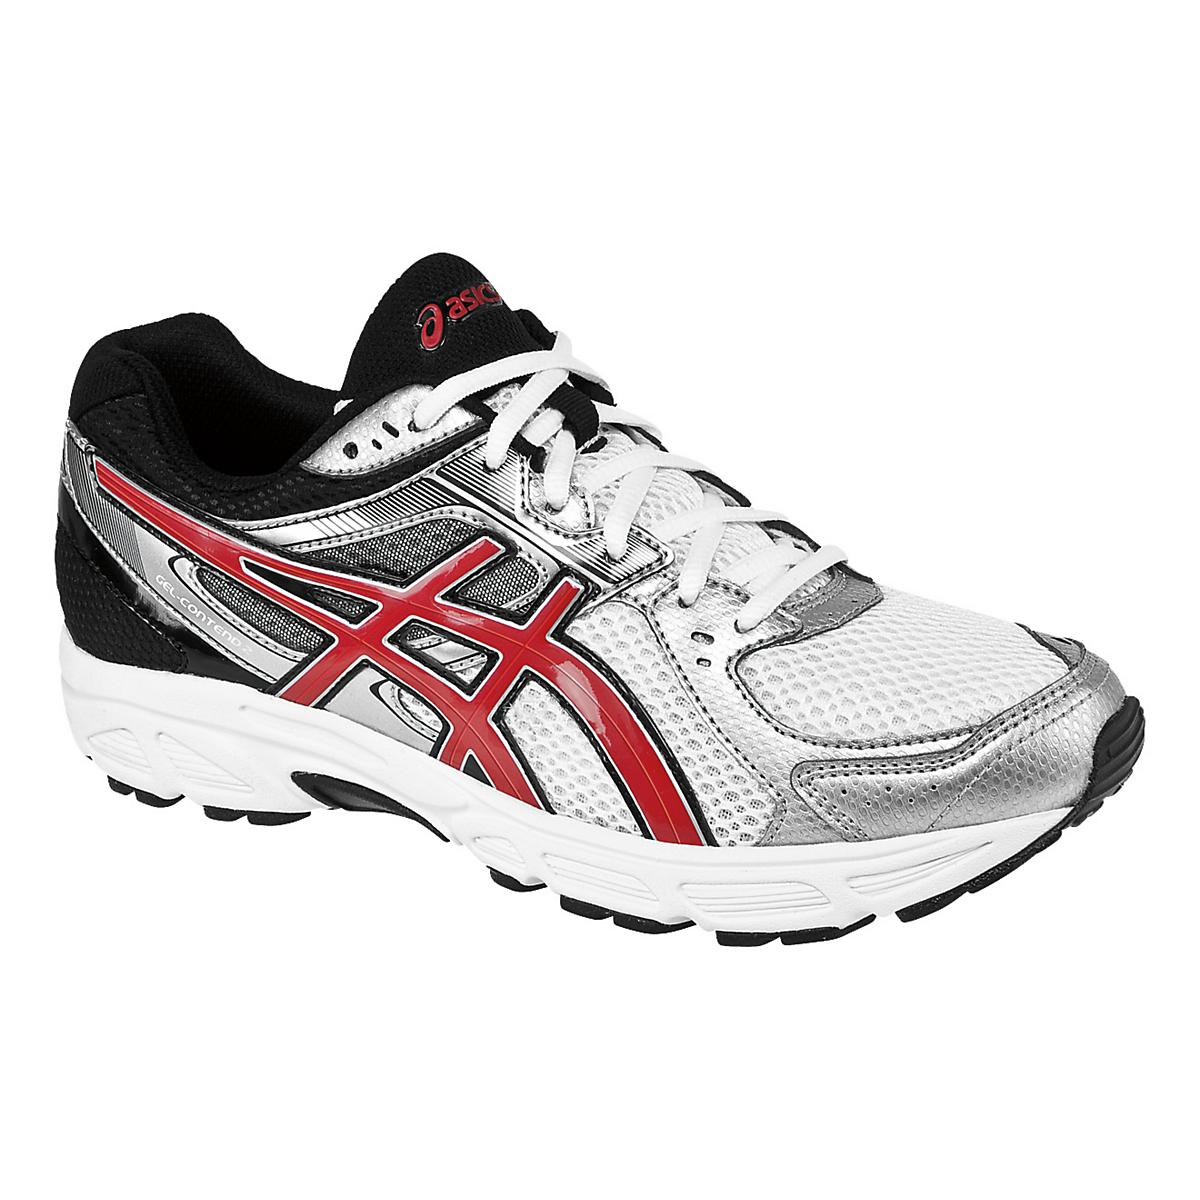 4f0bd0a06568 Mens ASICS GEL-Contend 2 Running Shoe at Road Runner Sports